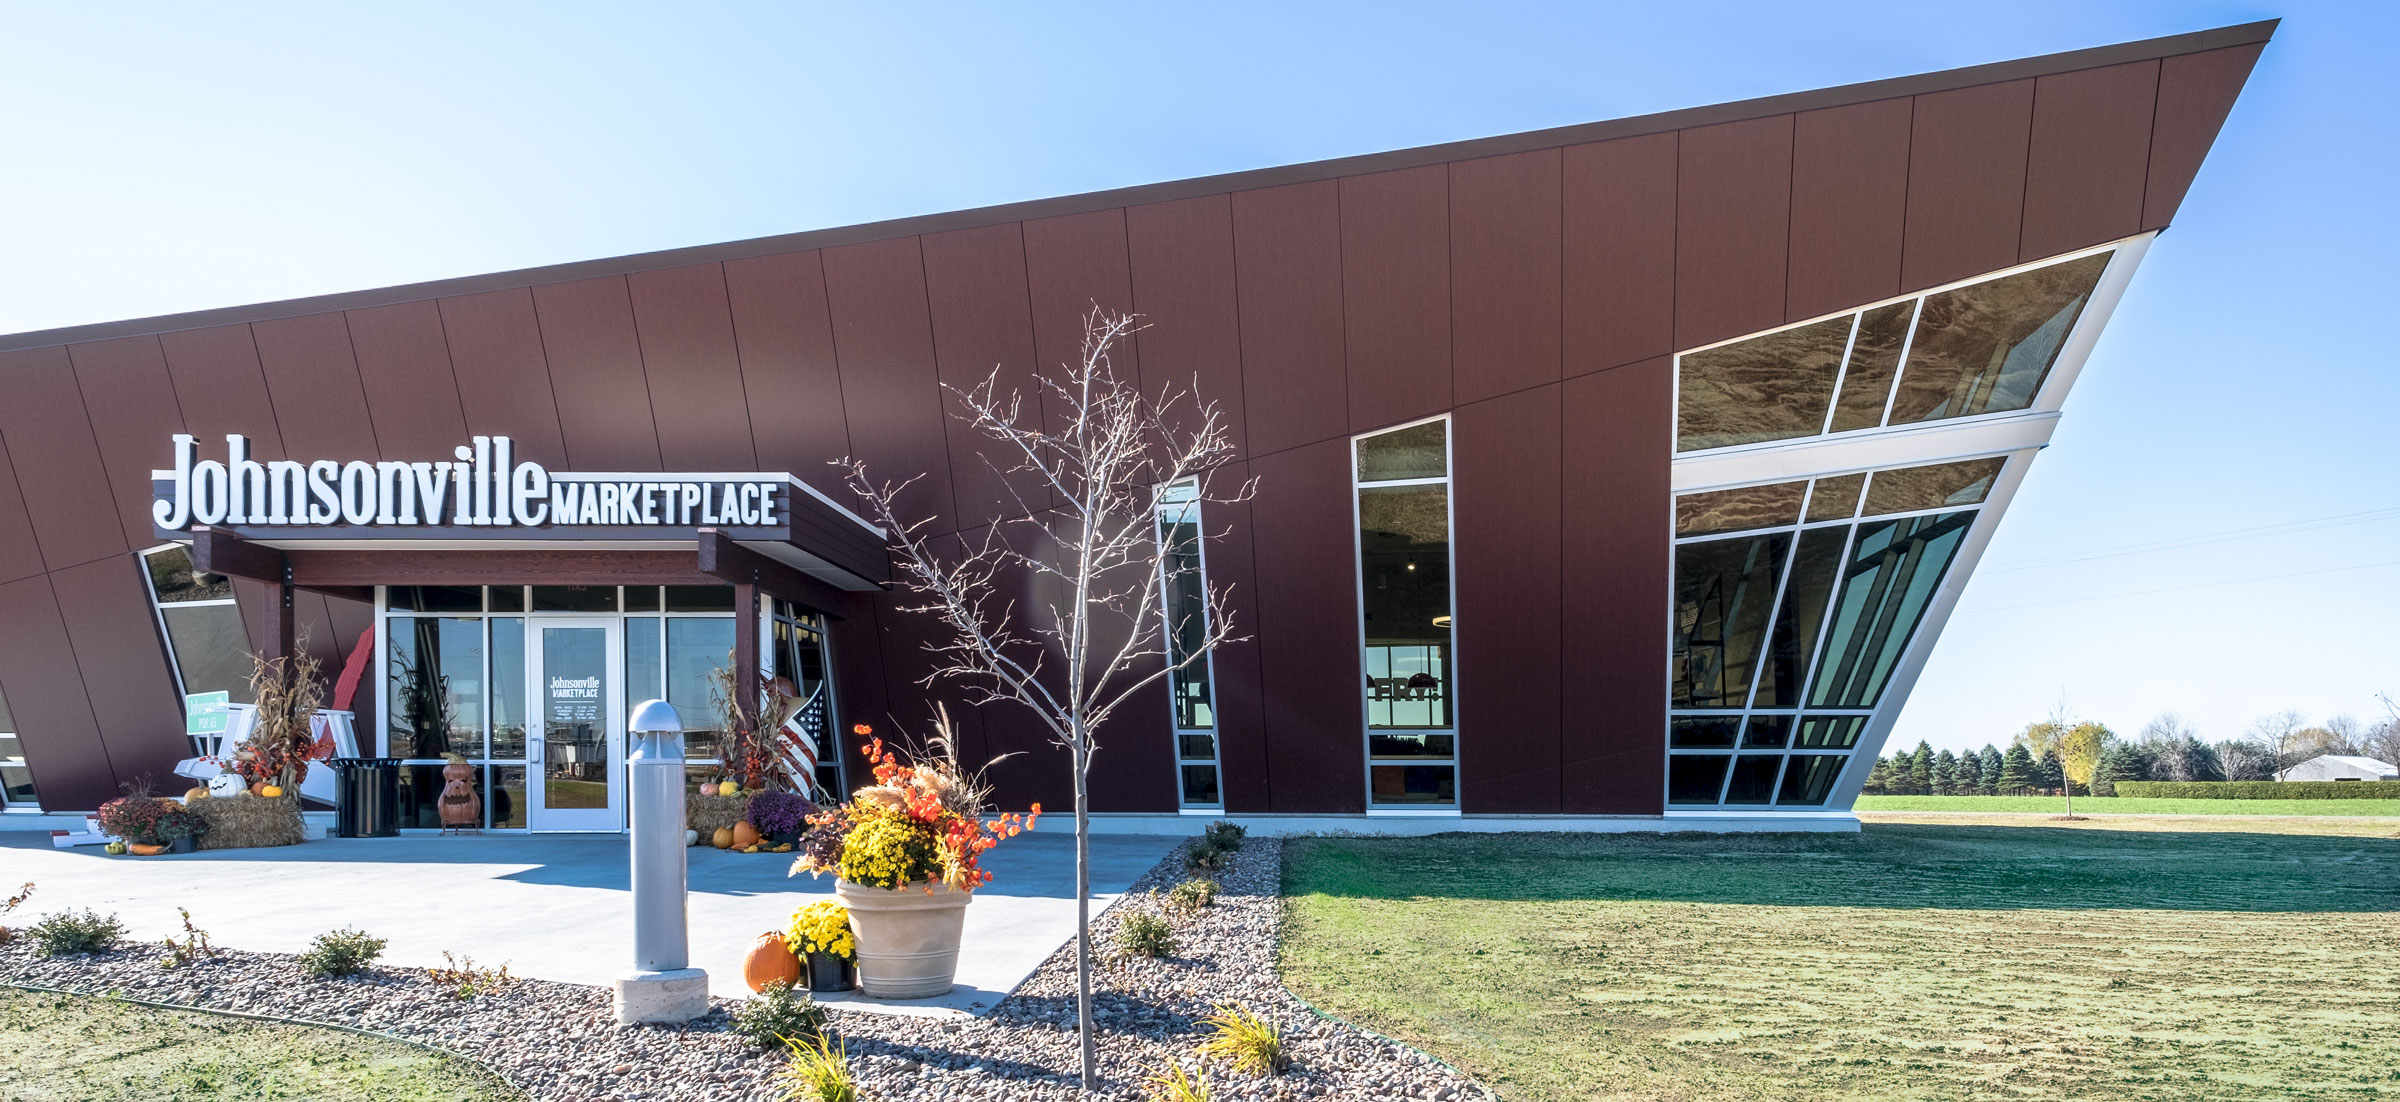 Johnsonville Marketplace Retail Shop Modern Exterior Canted Facade Green Build by C.D. Smith Construction Manager